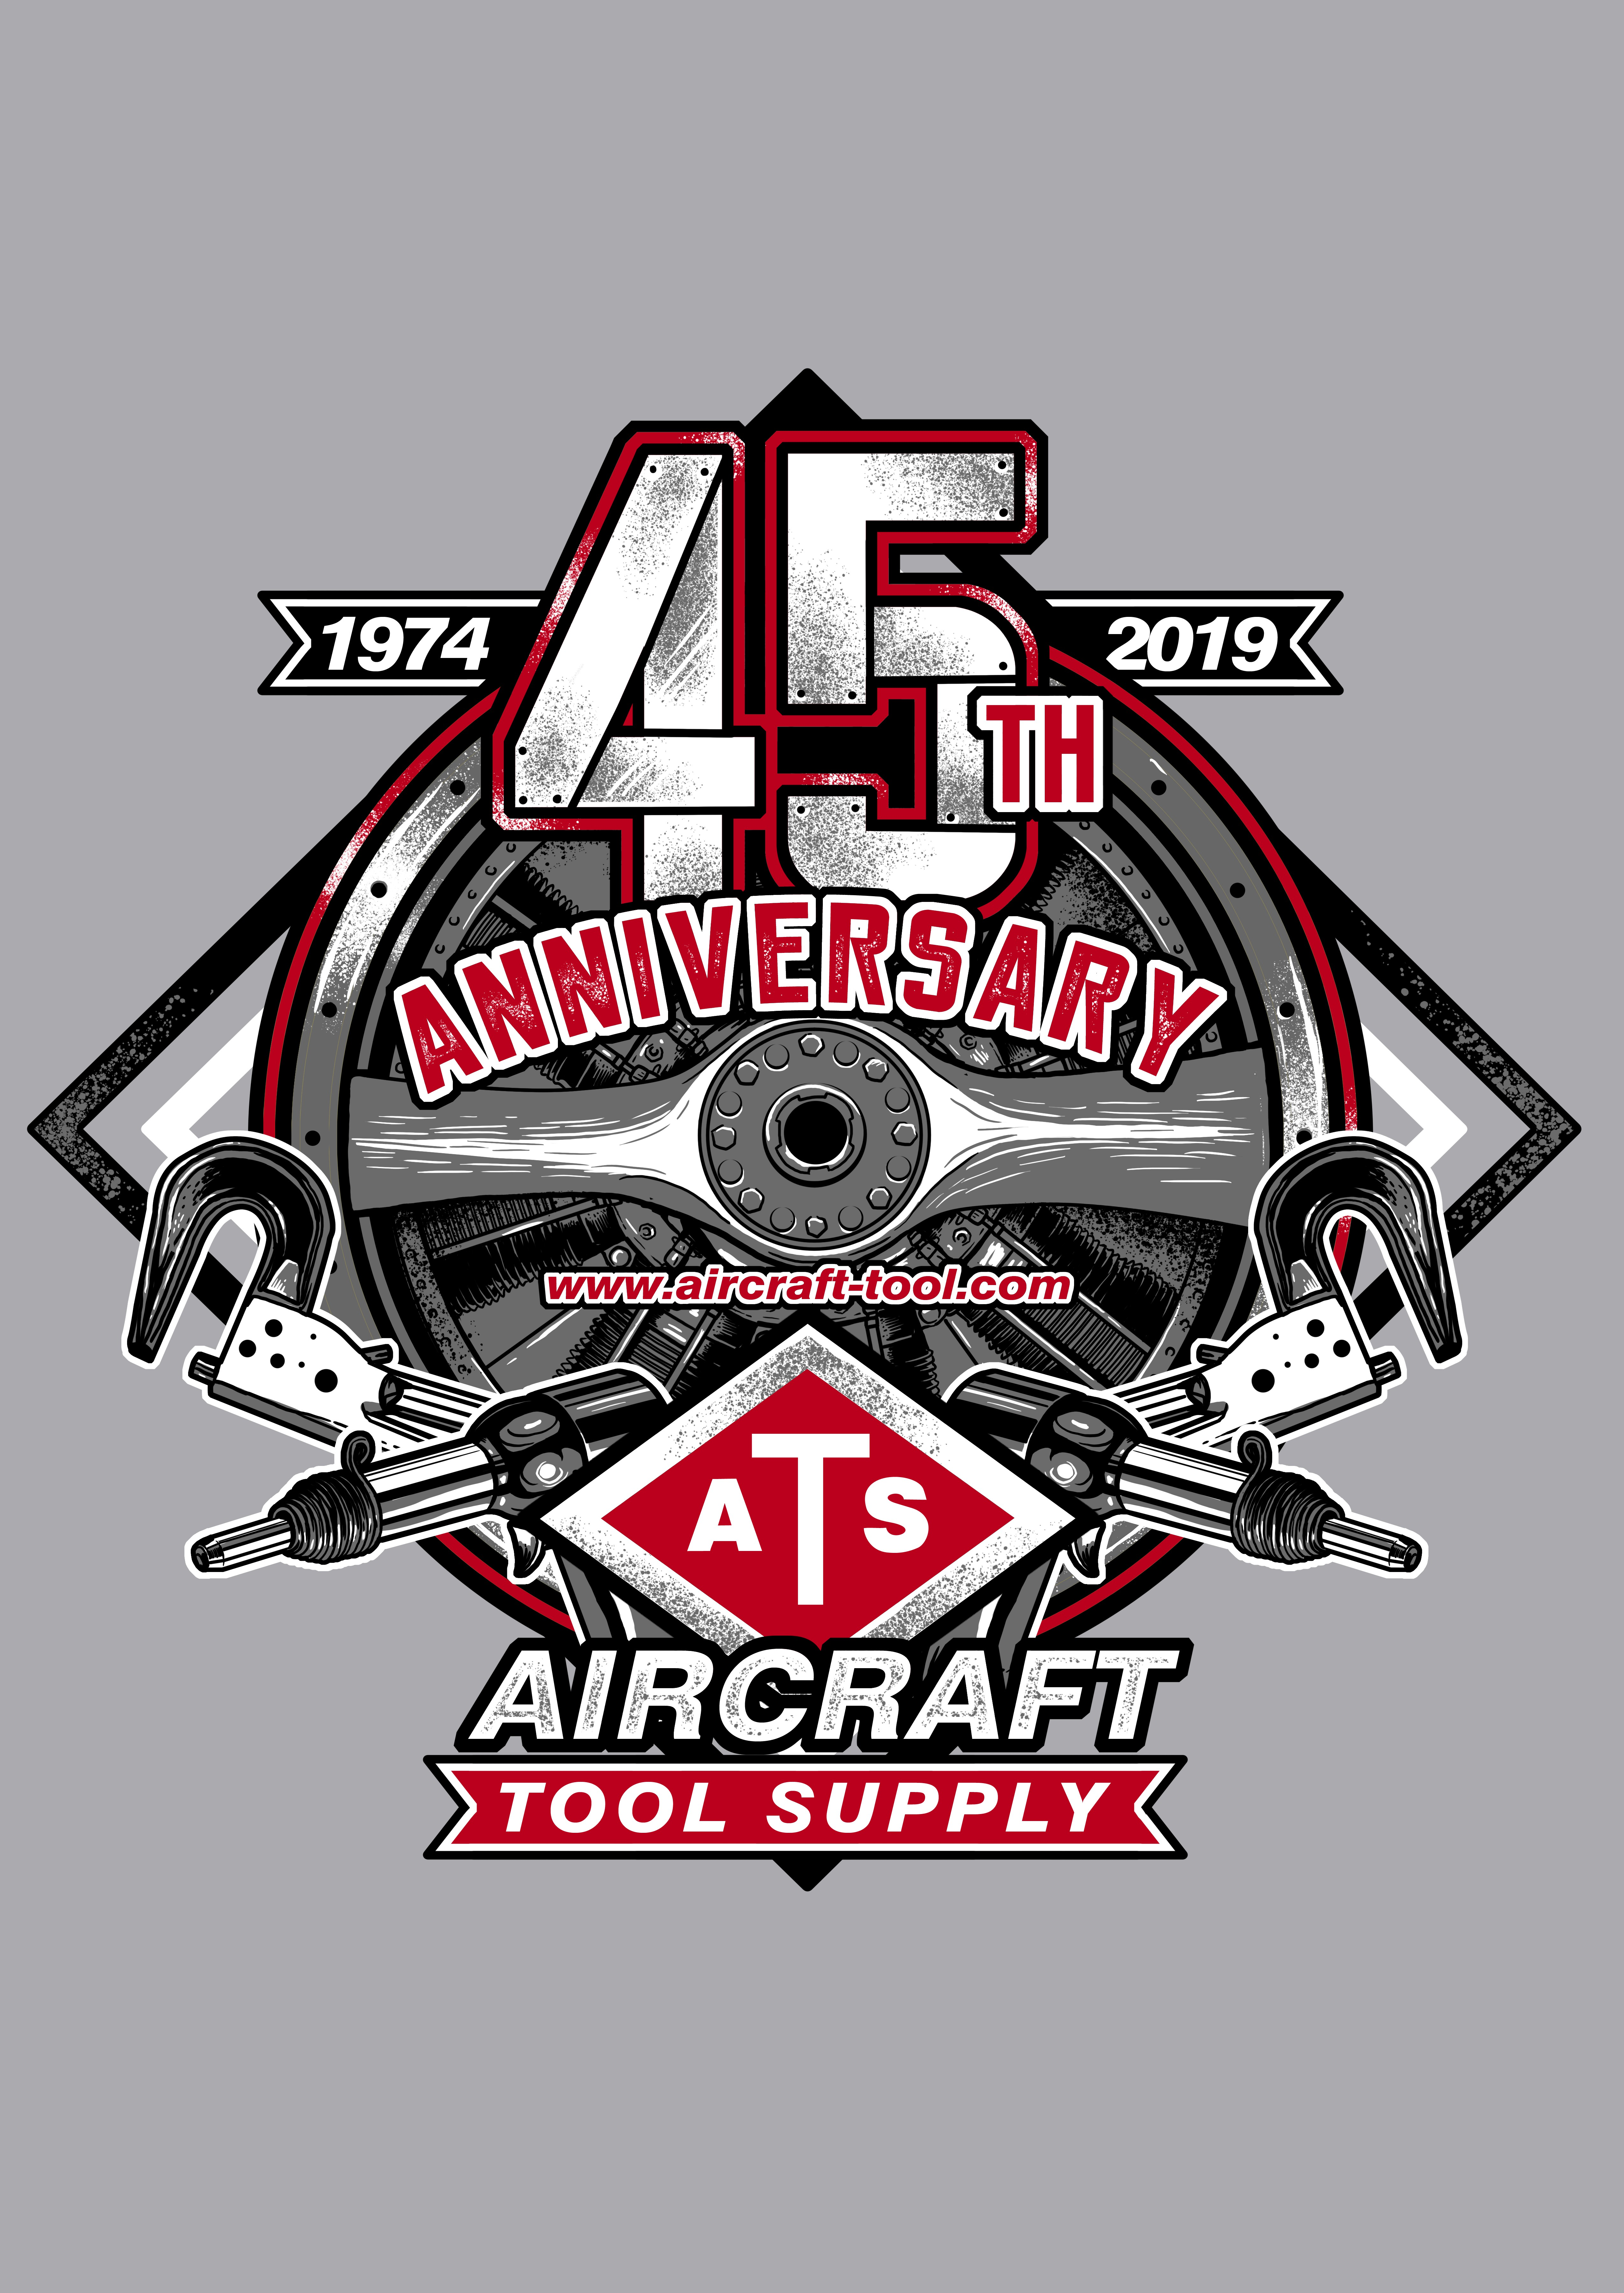 Create an Aviation Mechanic inspired T-shirt for Aircraft Tool Supply!